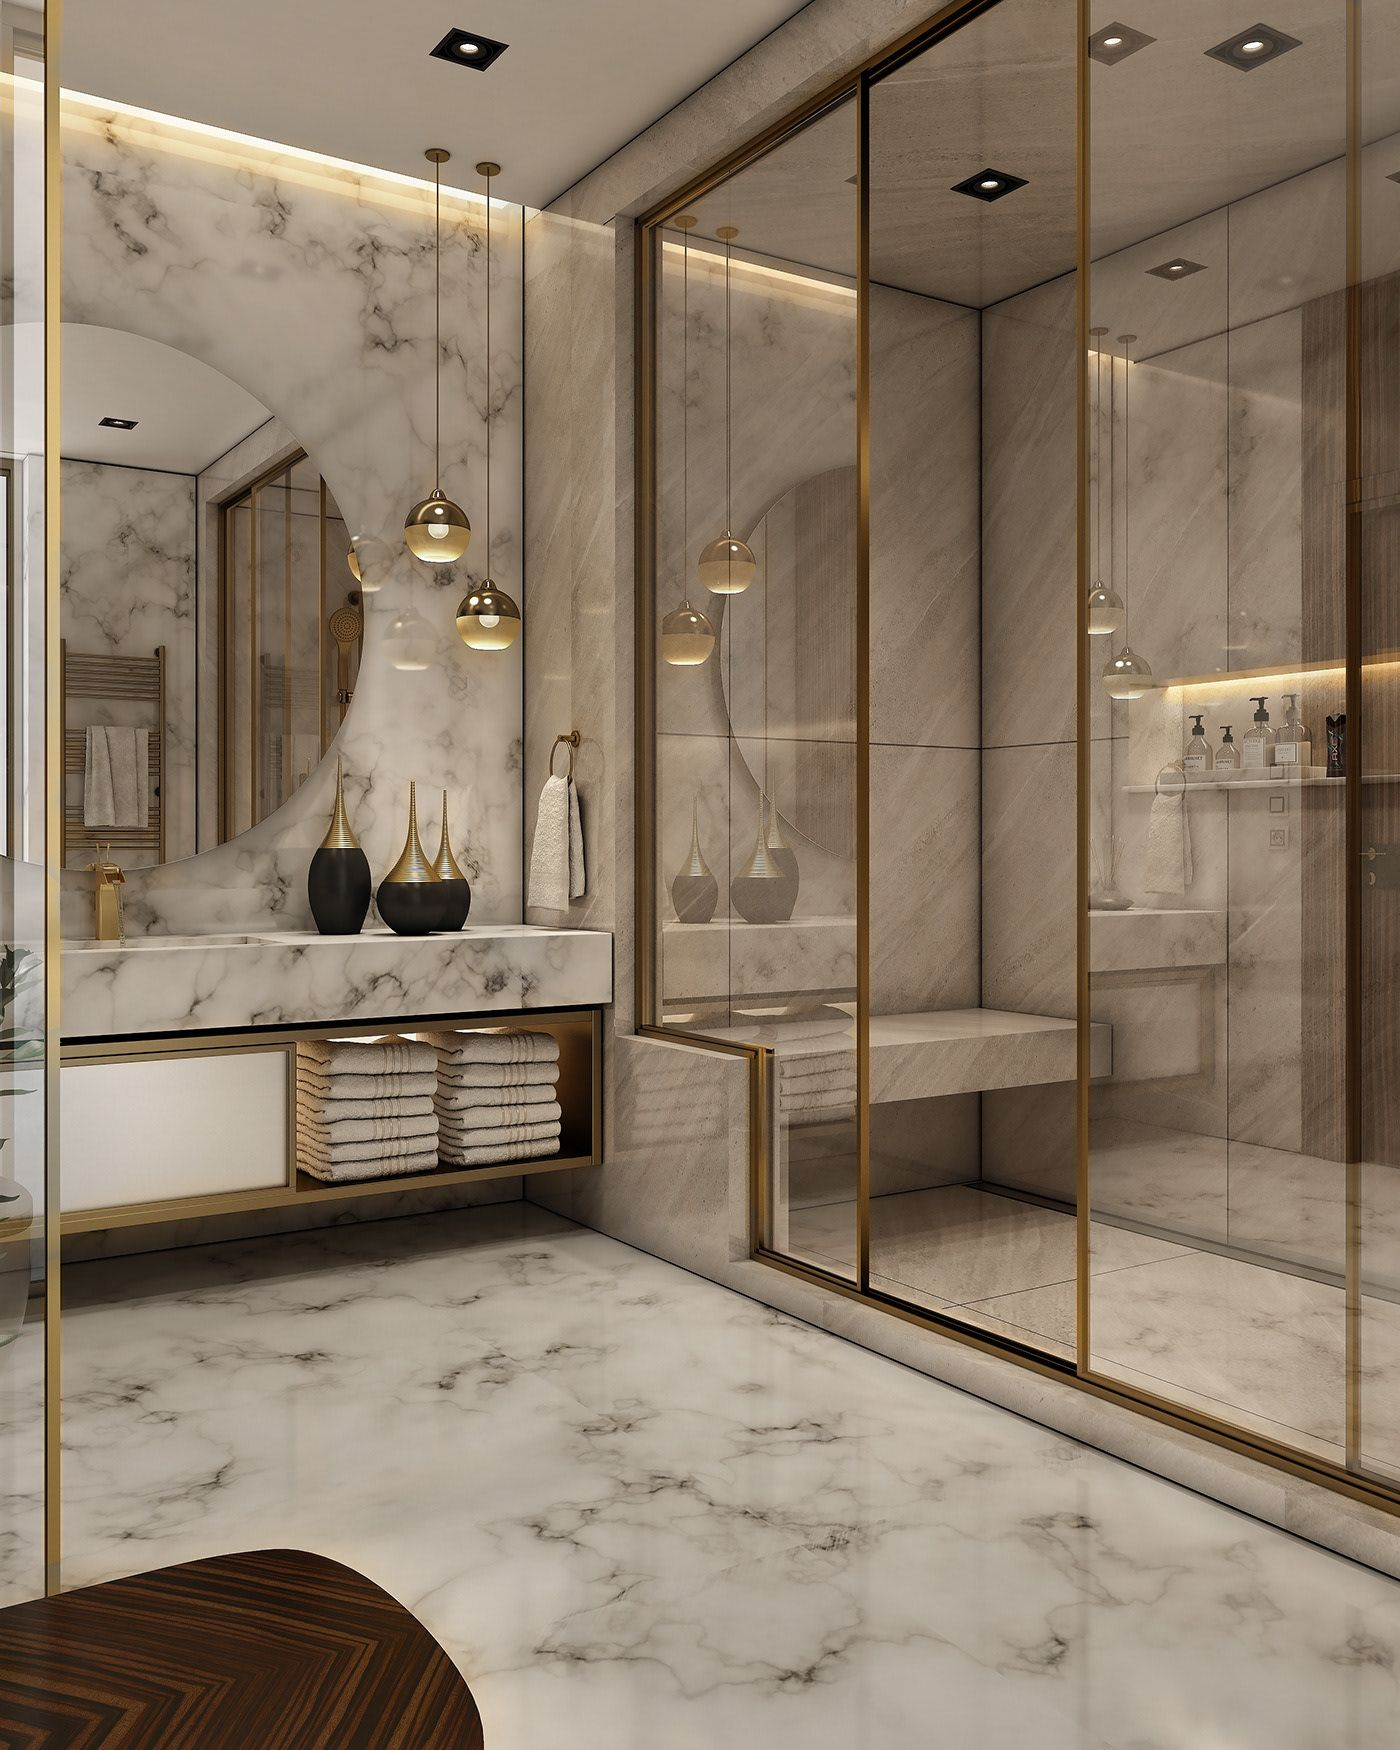 Check Out This Behance Project Luxurious Bathroom Https Www Behance Net Gallery 68 Bathroom Design Luxury Bathroom Interior Design Modern Bathroom Design